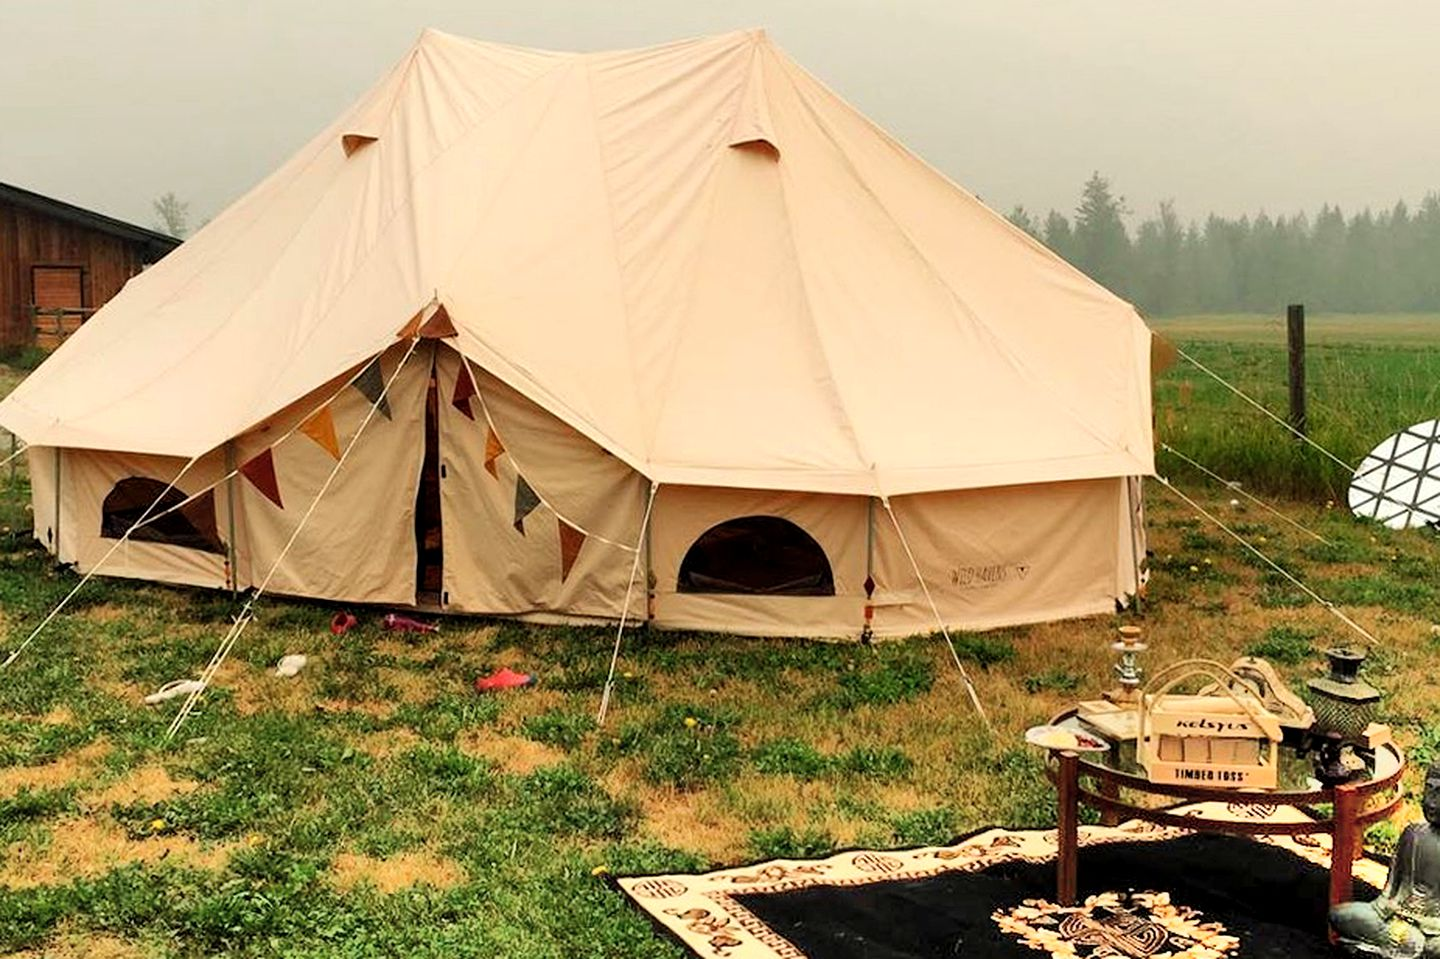 This pop-up bell tent is great for glamping in British Columbia